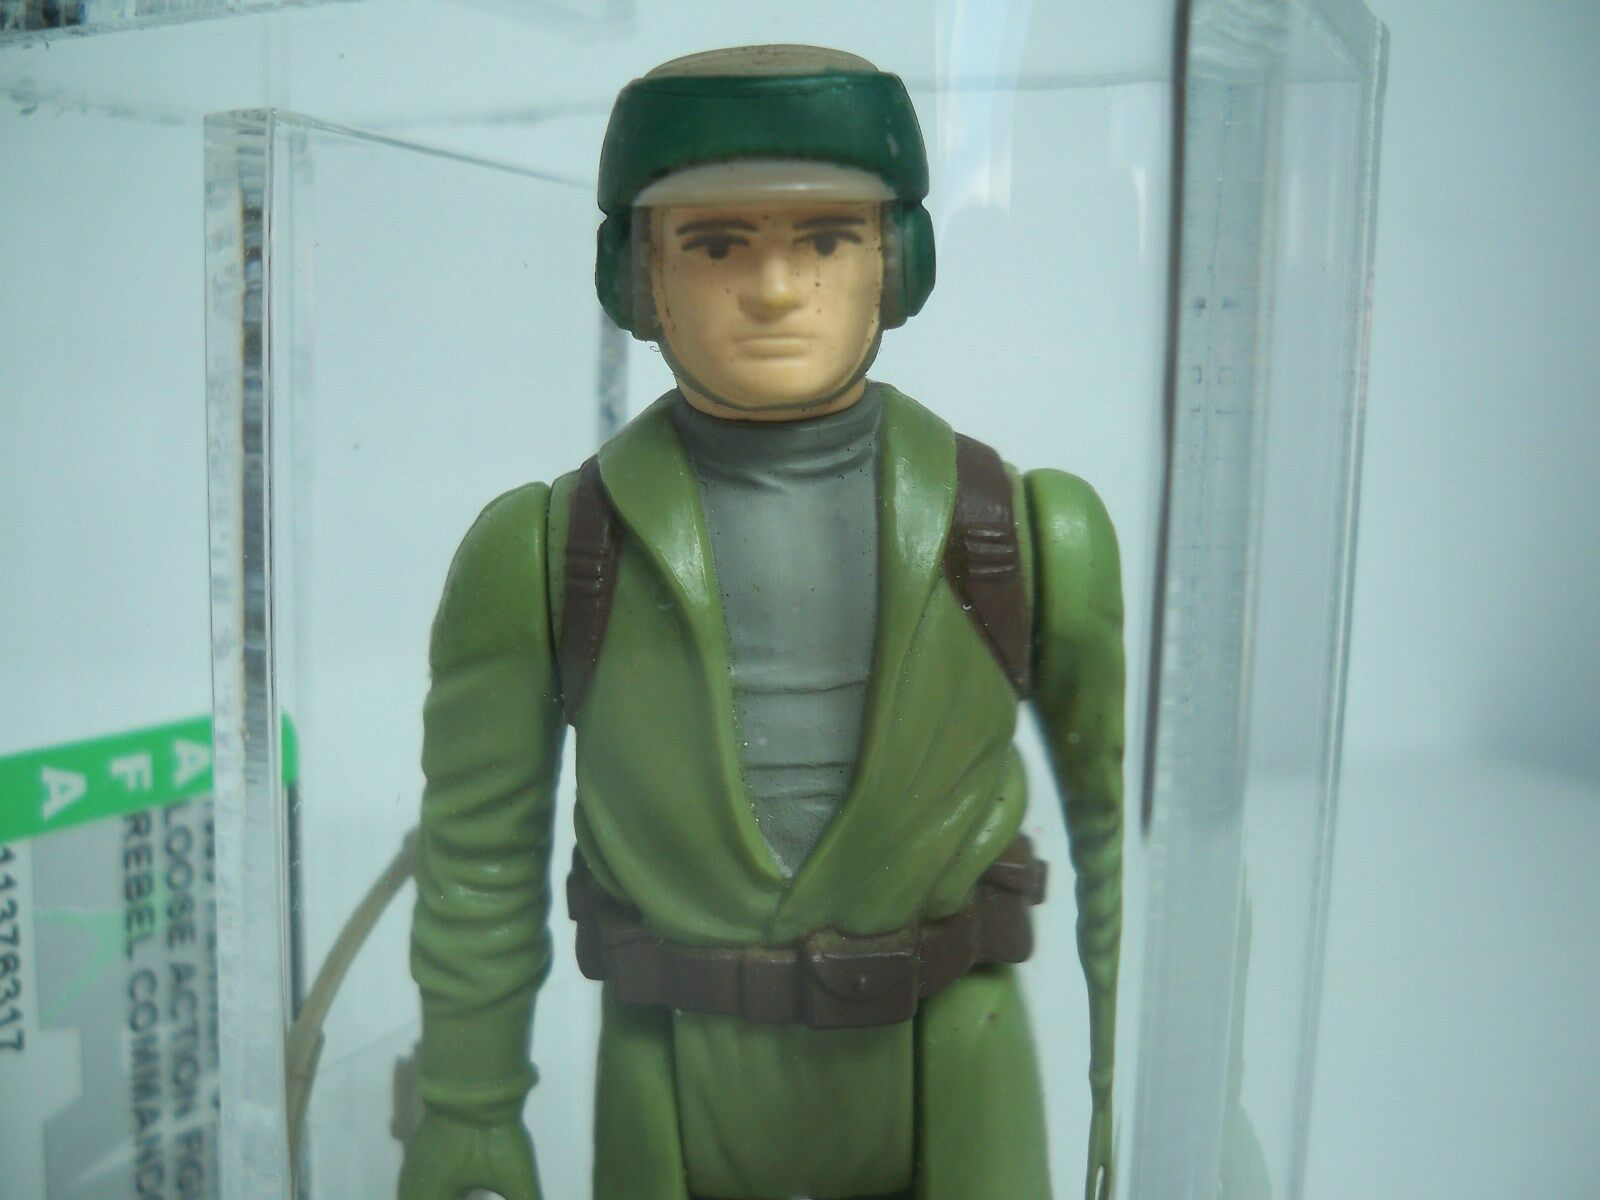 R0509025 Rebel Commando Afa 85 Estrella Wars 1983 Kenner Vintage